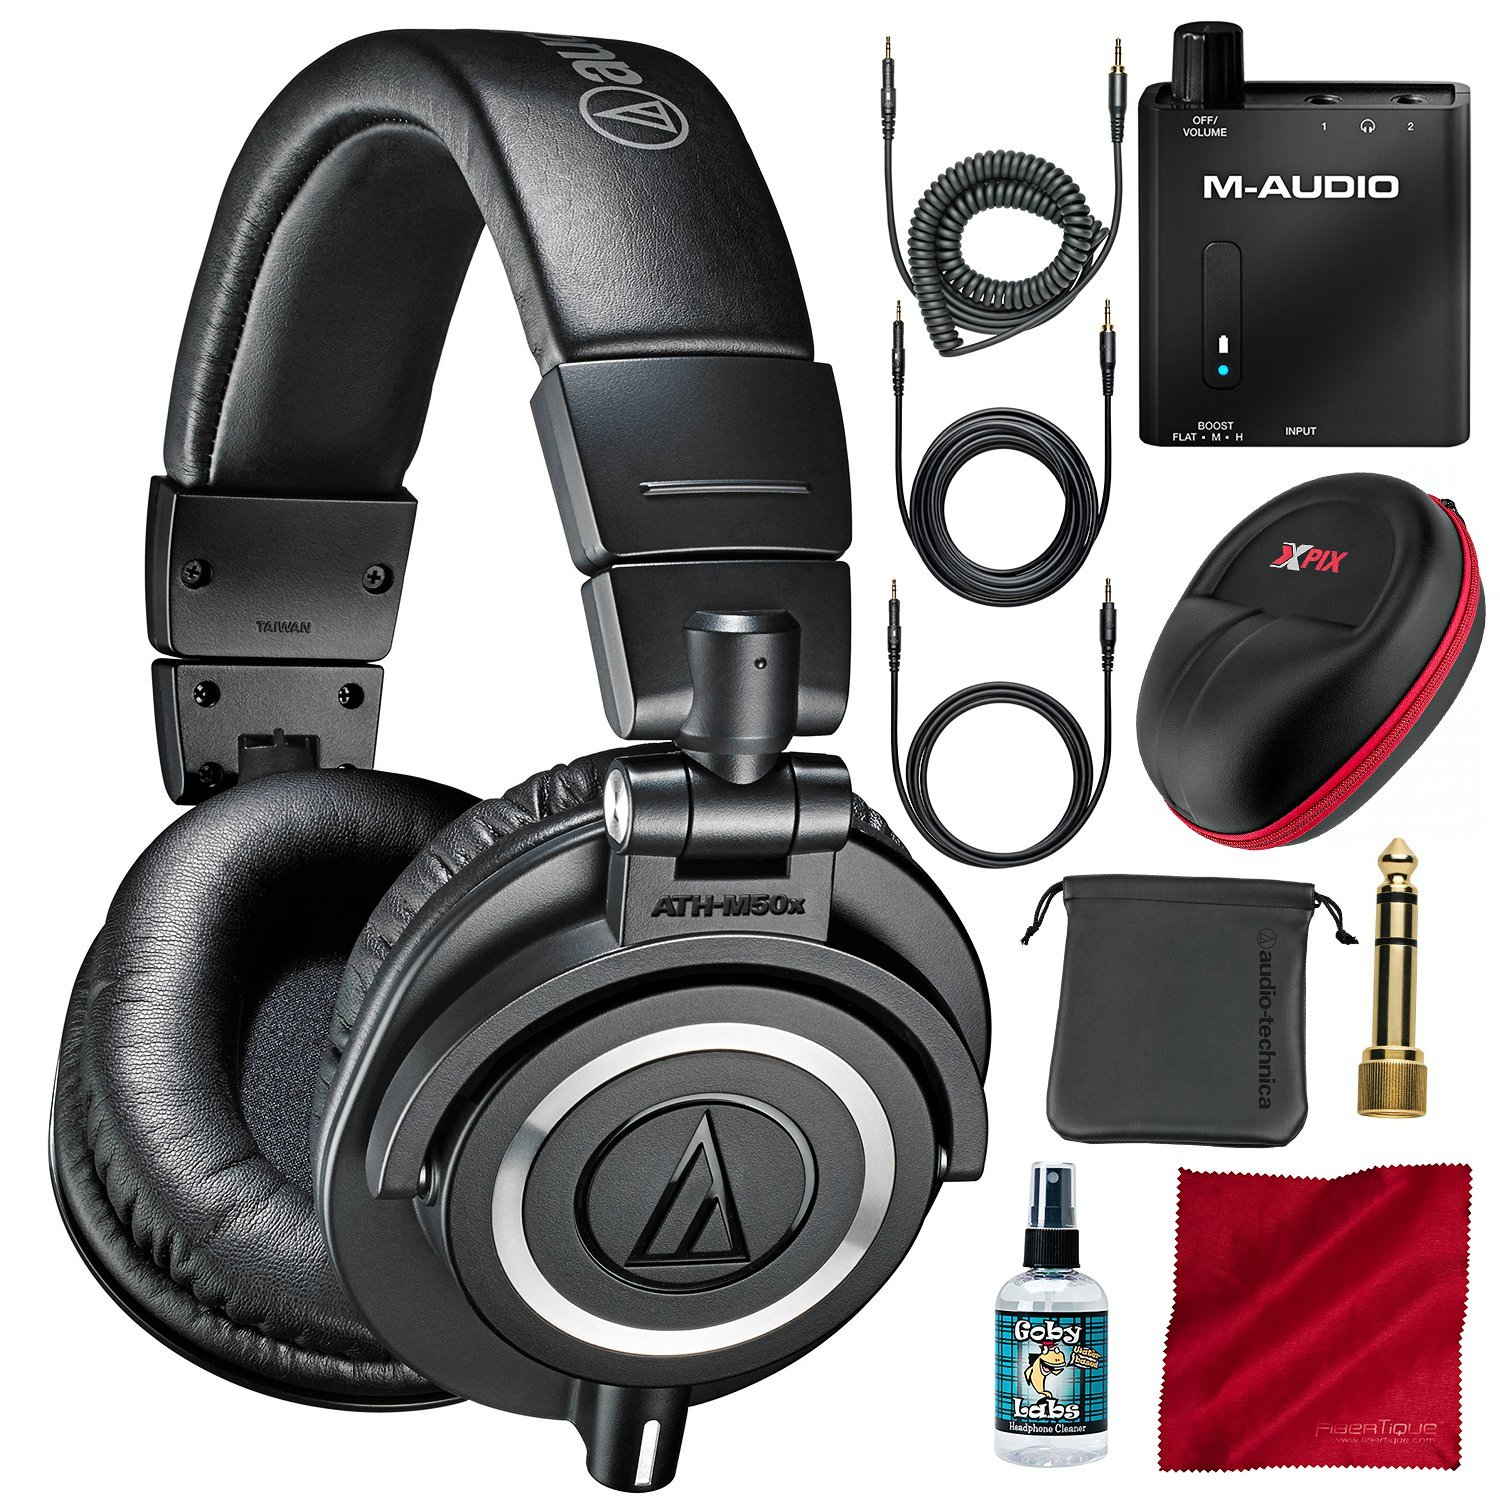 Audio-Technica ATH-M50x Professional Monitor Headphones and Deluxe Accessory Bundle with Headphone Amplifier + Protective Case + More